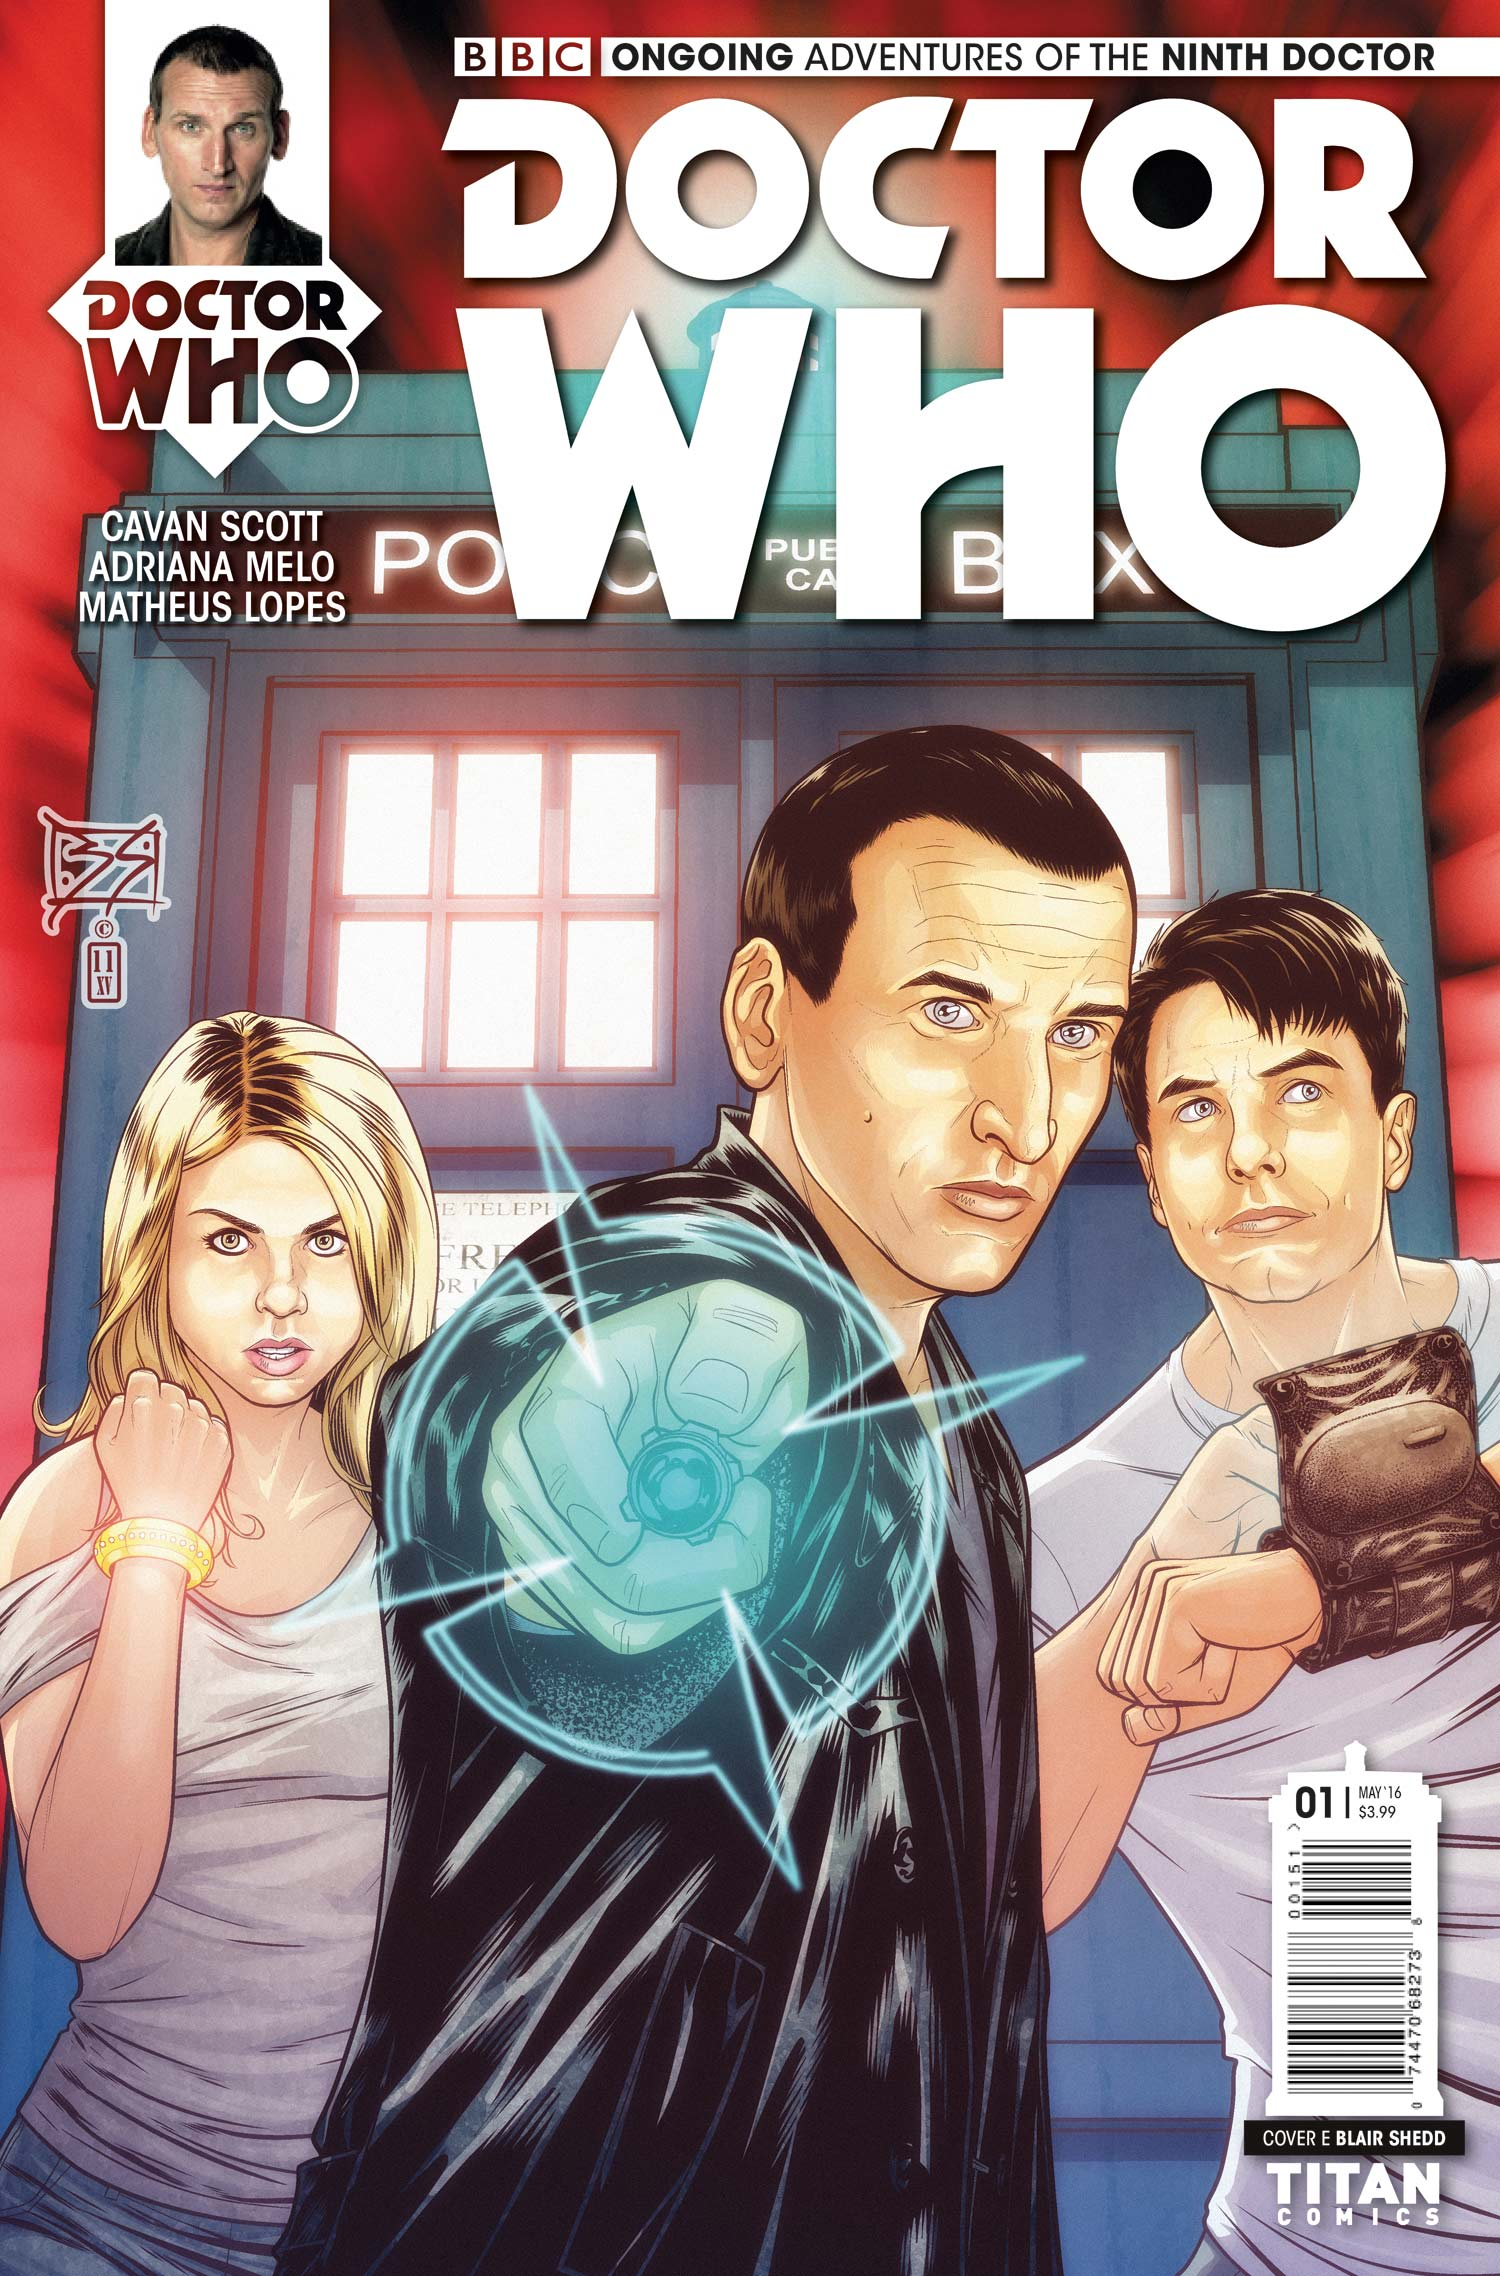 Doctor Who: Ninth Doctor  #1  (Credit: Titan)